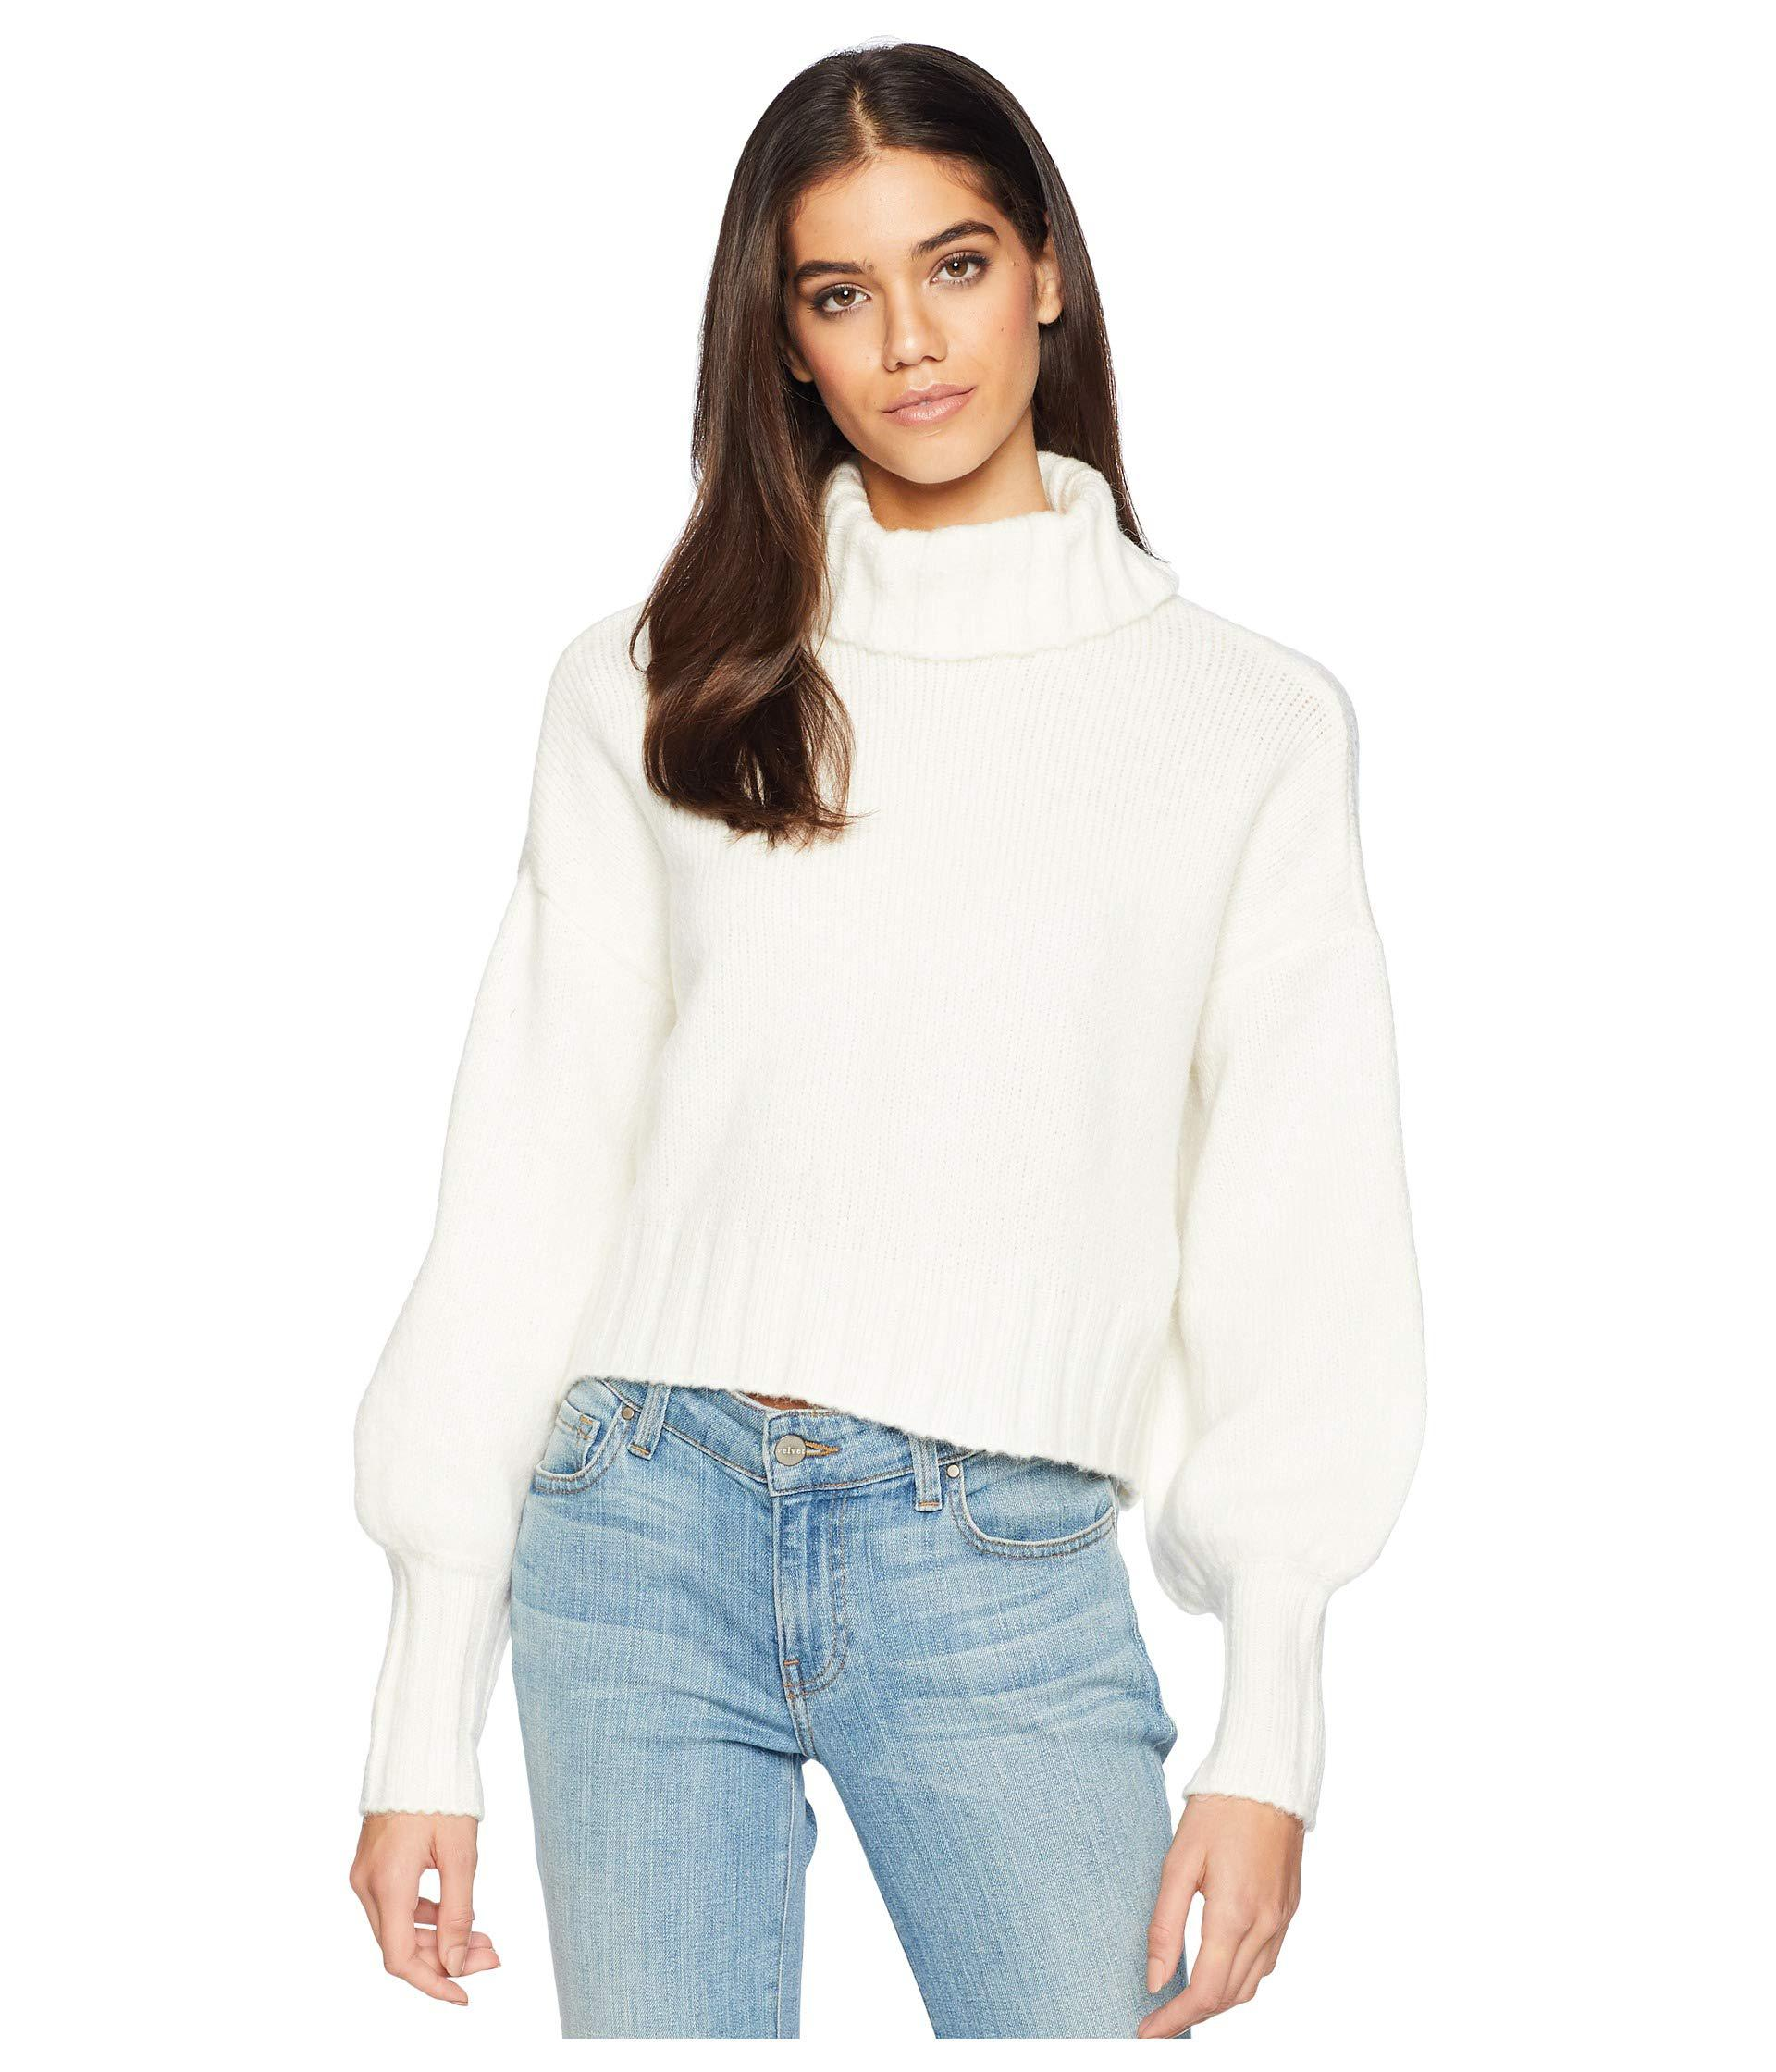 b34e81b8b7d8 Lyst - For Love   Lemons Dylan Turtleneck Sweater (ivory) Women s ...